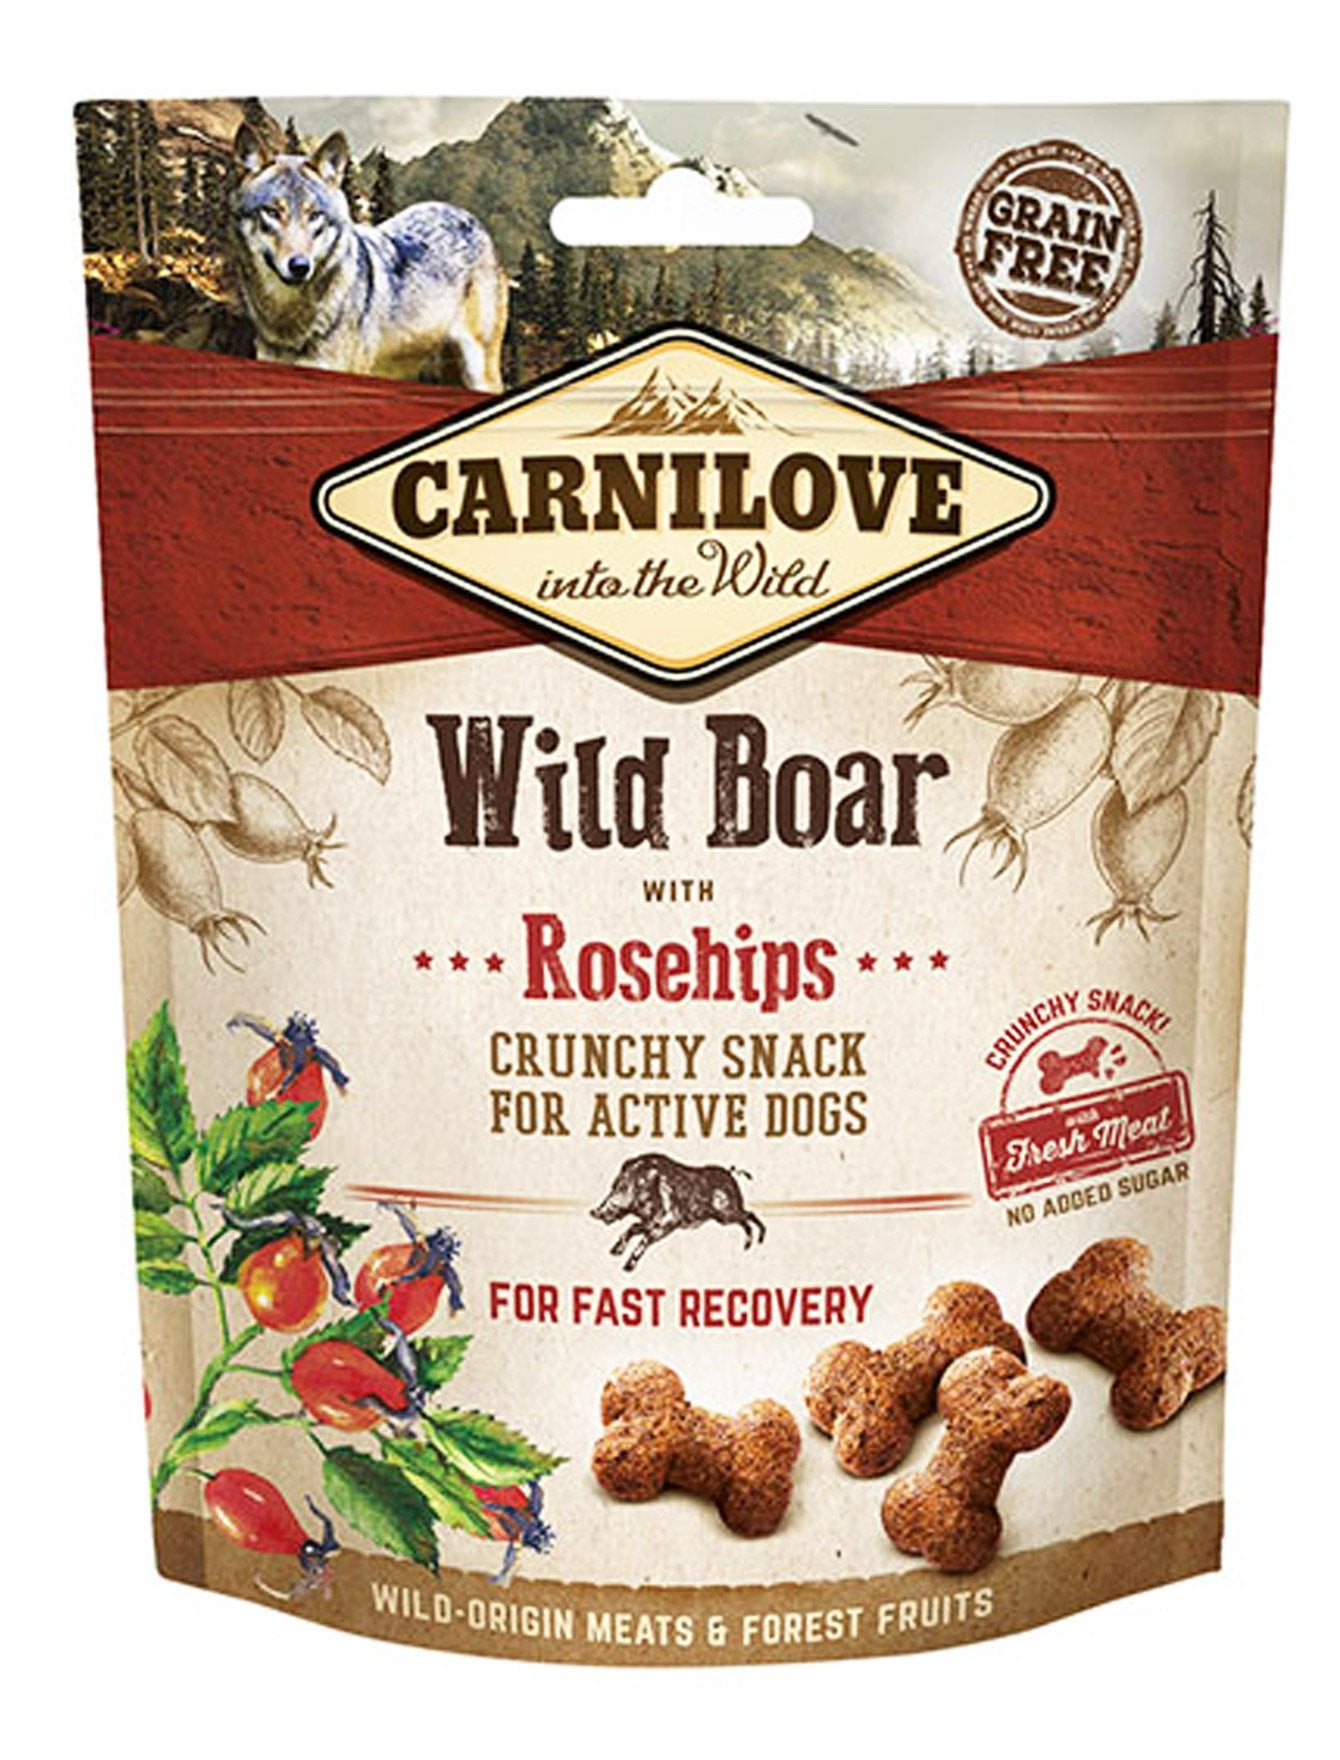 Carnilove Wildboar with Rosehip Crunchy Snack Dog Treats 200g| Waggymeal Online Pet Store Malaysia